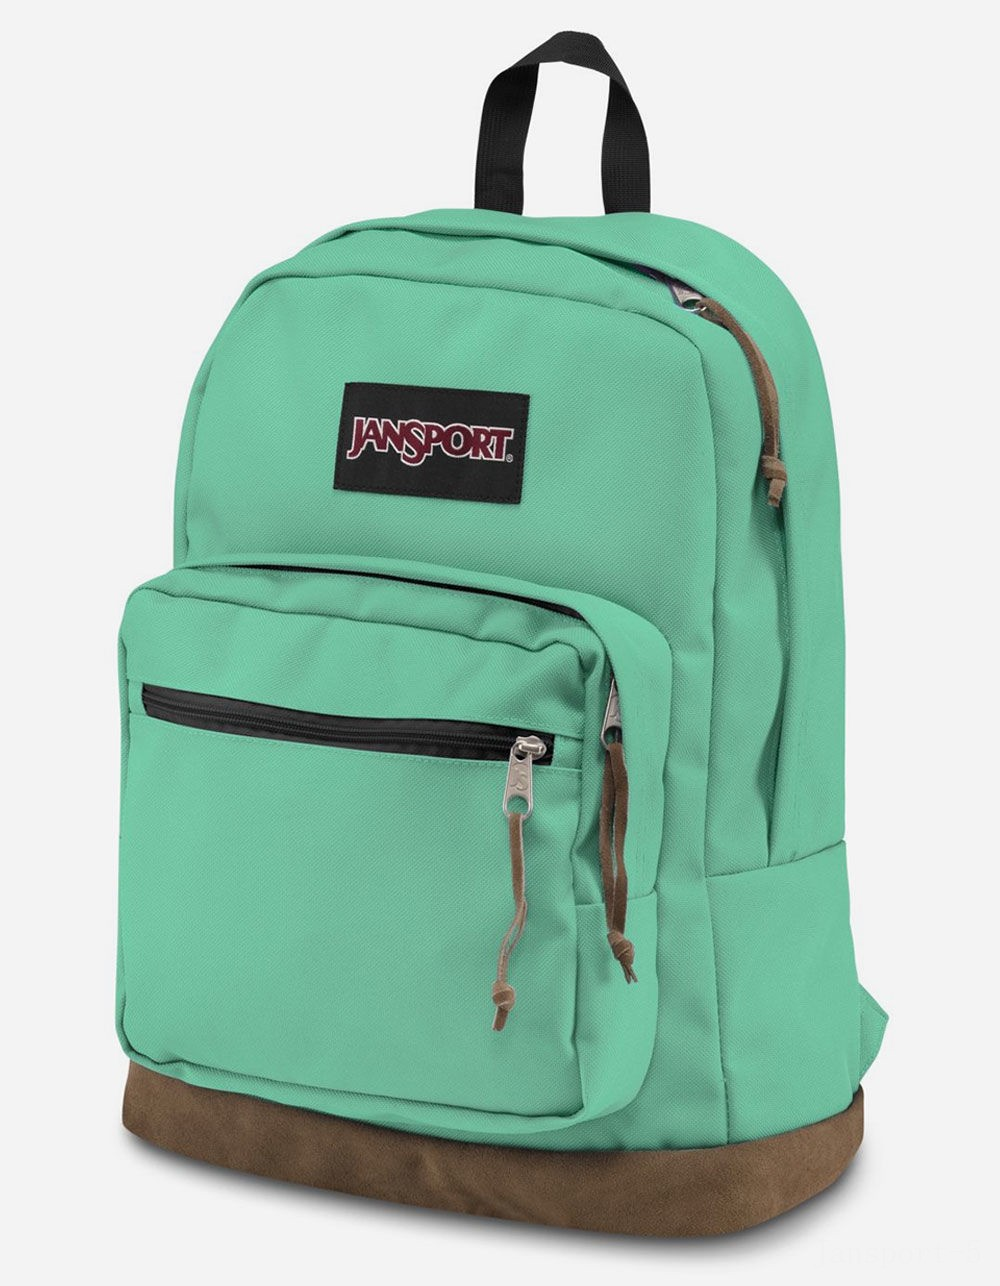 best price jansport right pack cascade backpack green last chance limited sale